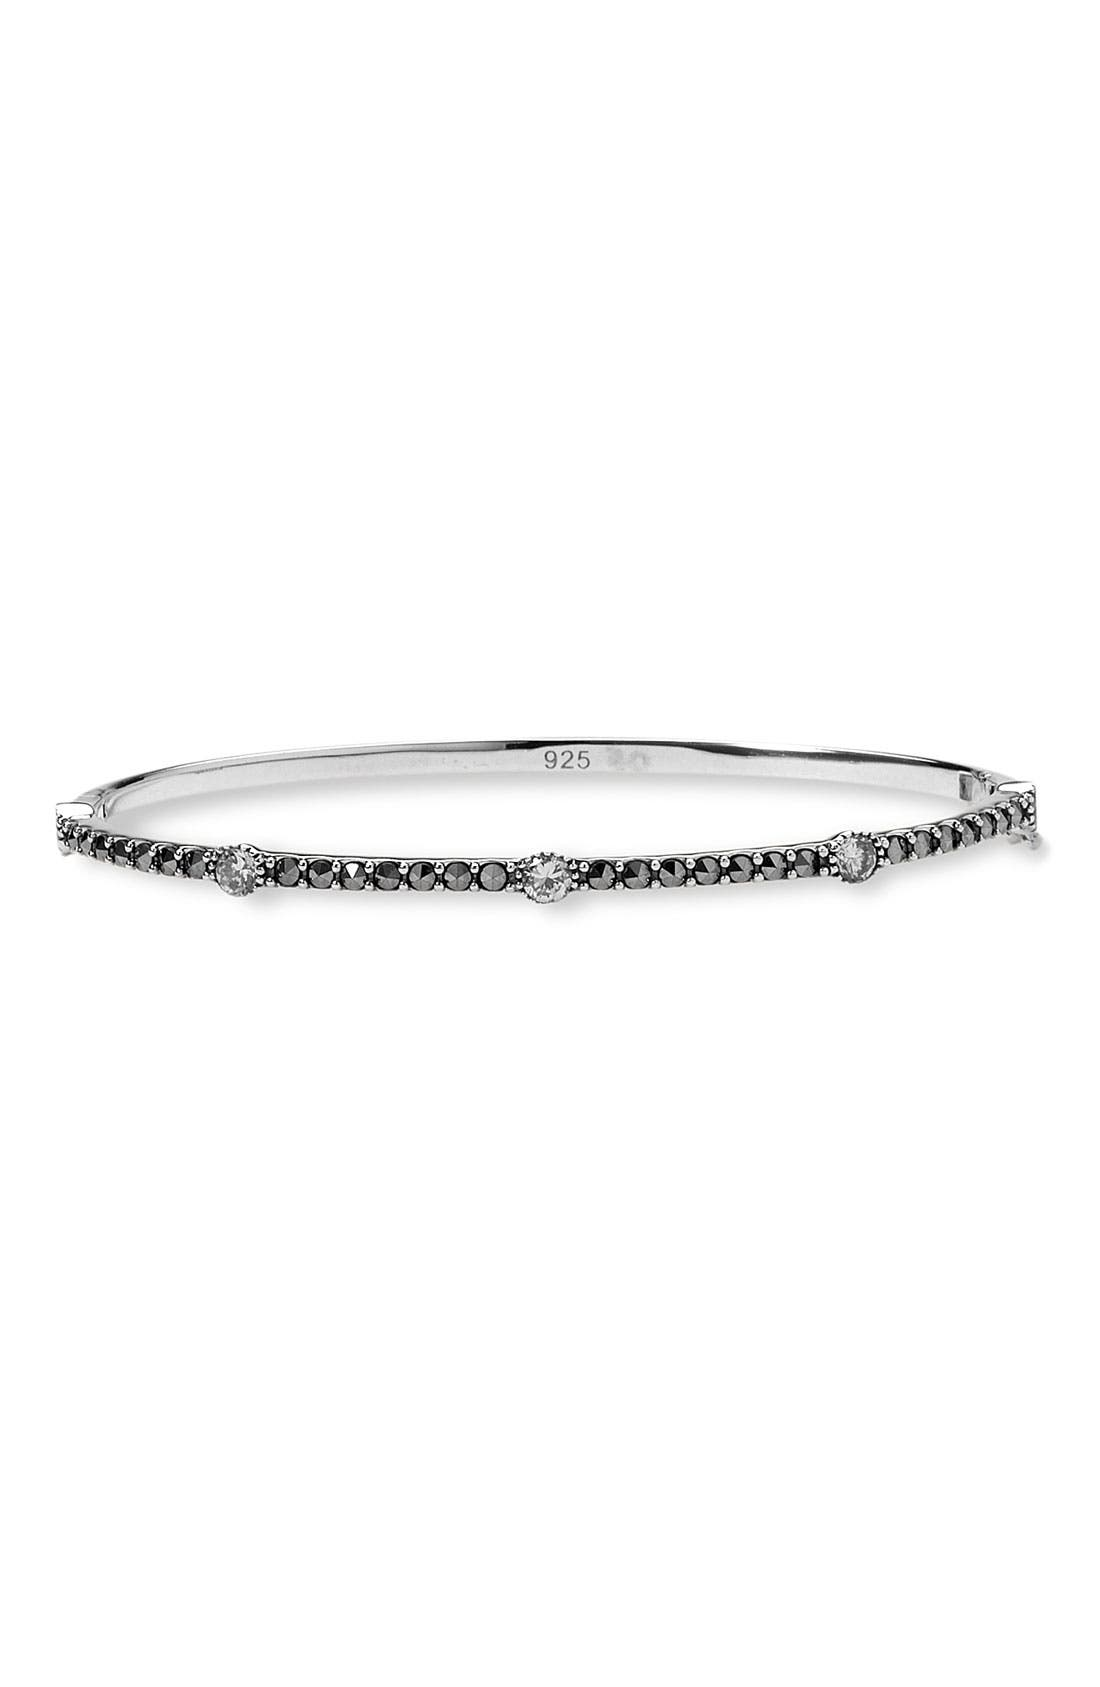 Alternate Image 2  - Judith Jack Crystal & Marcasite Bangle